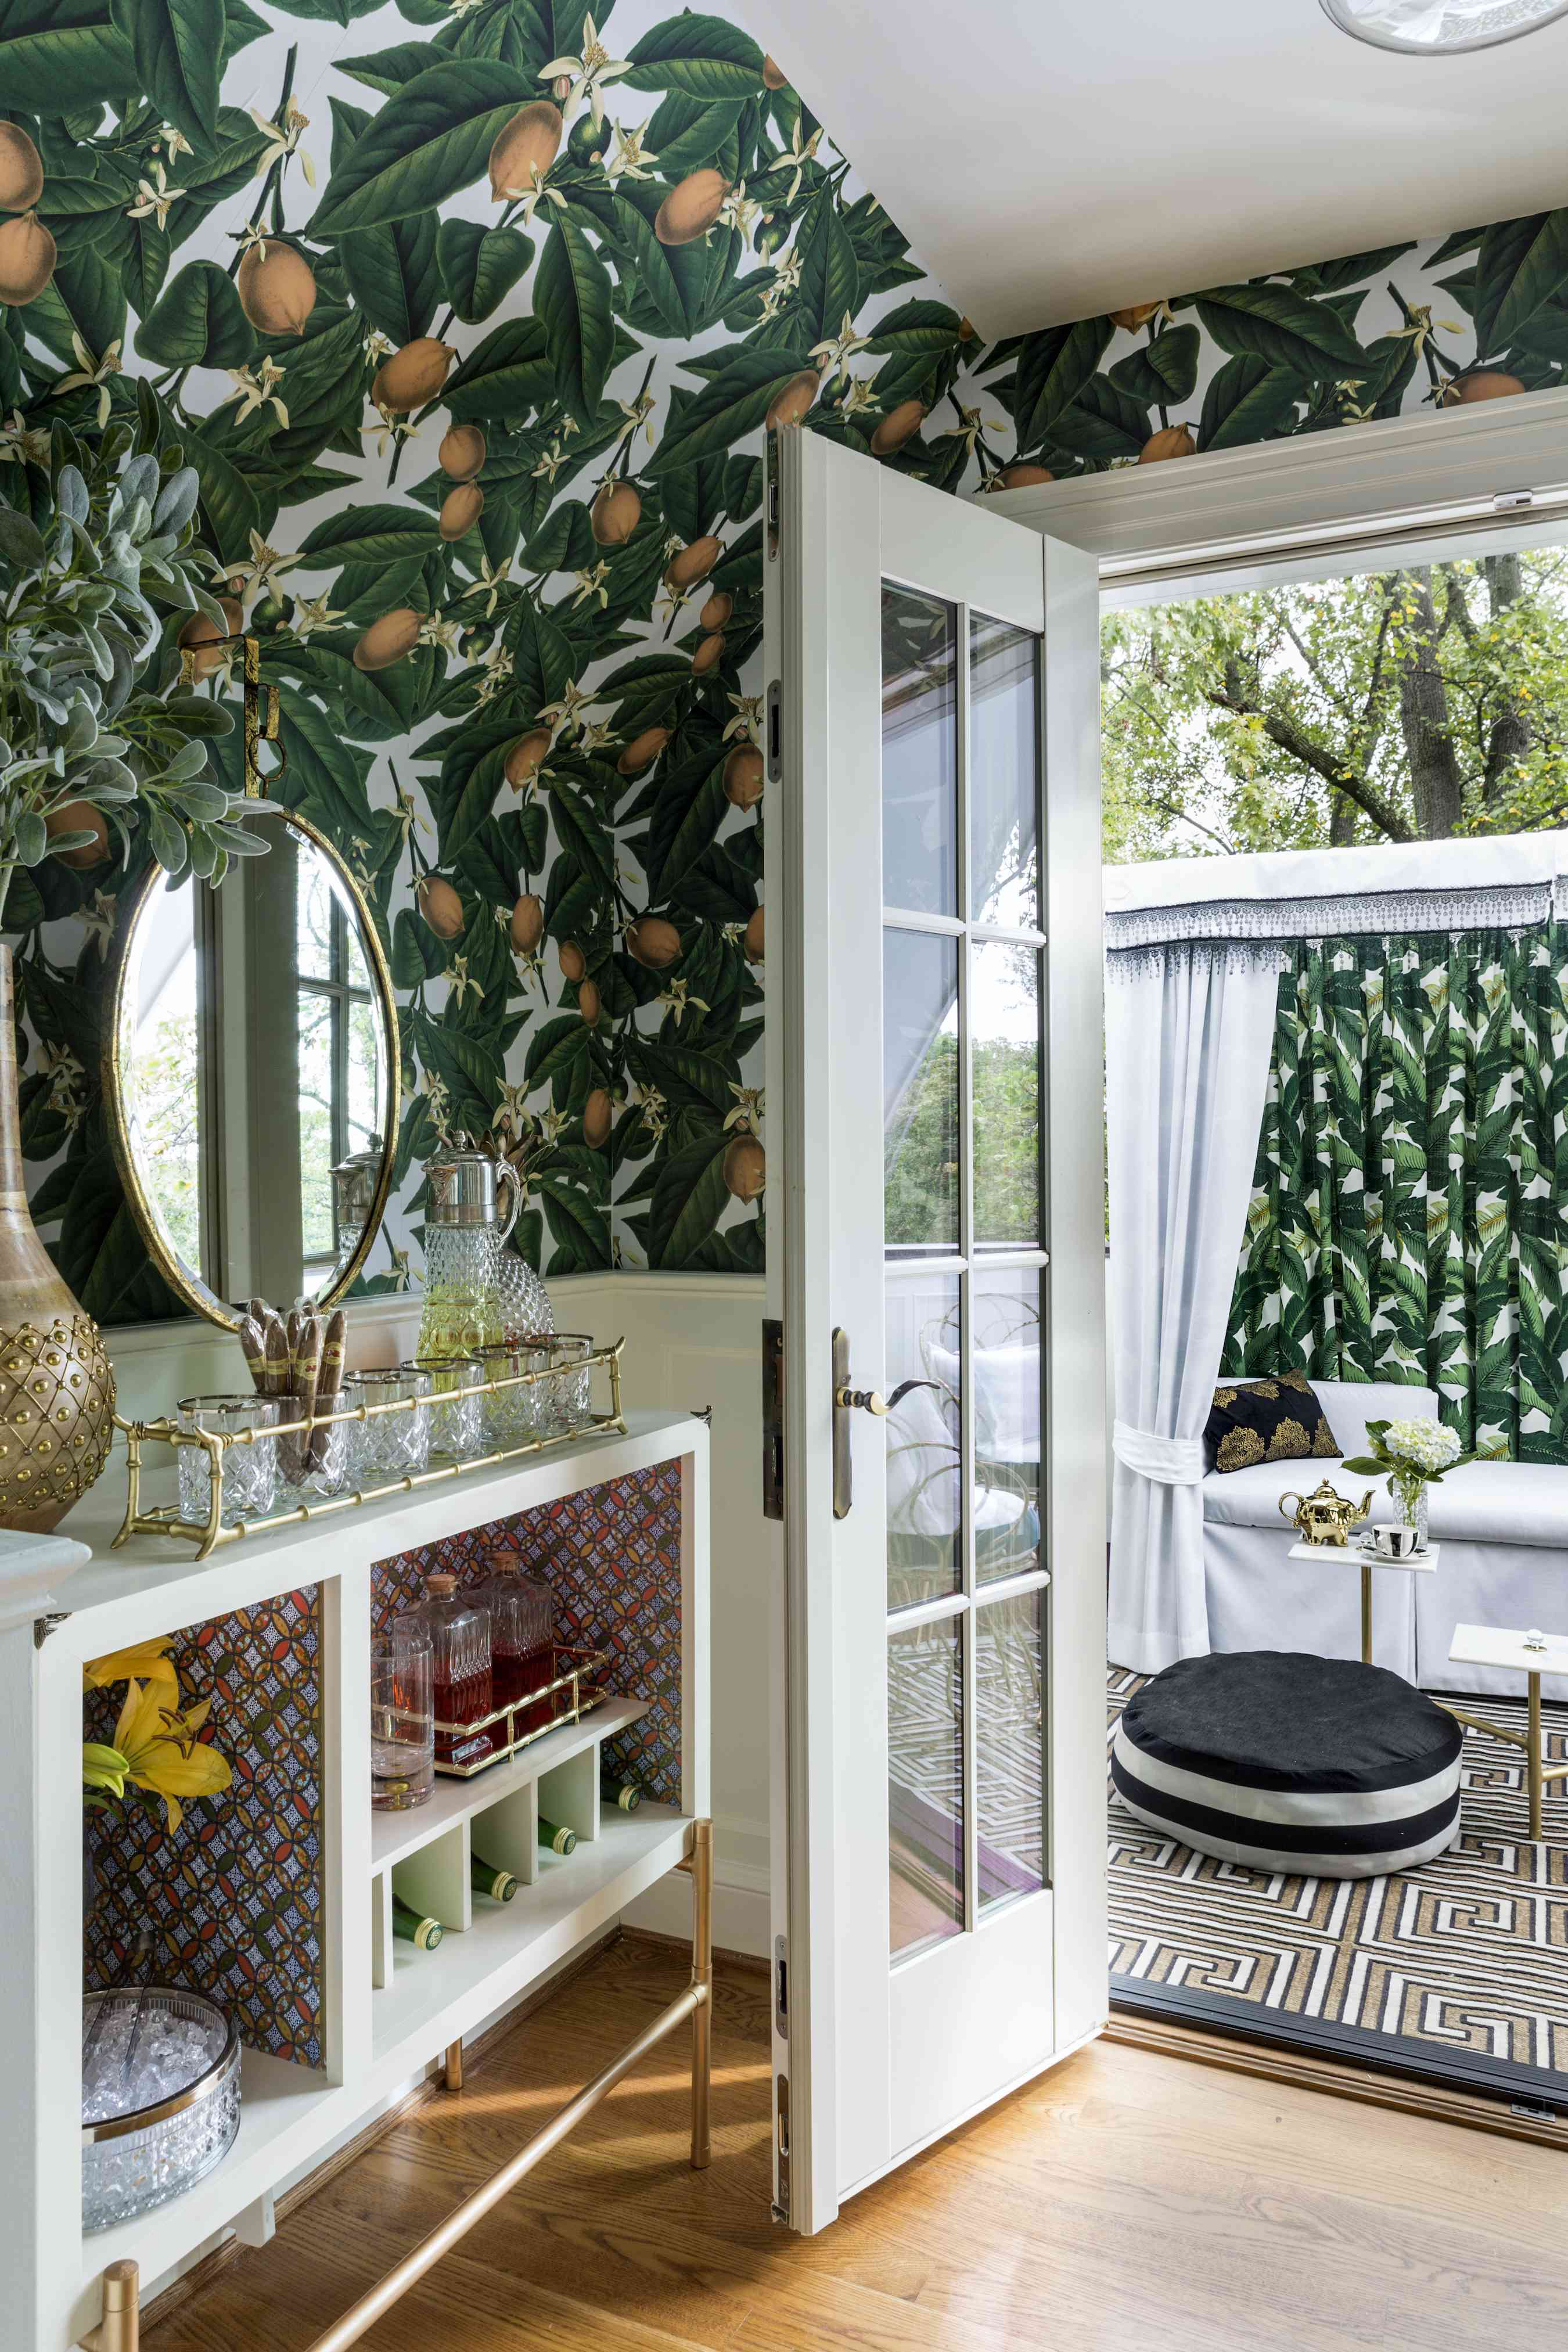 Dining space with funky wallpaper.